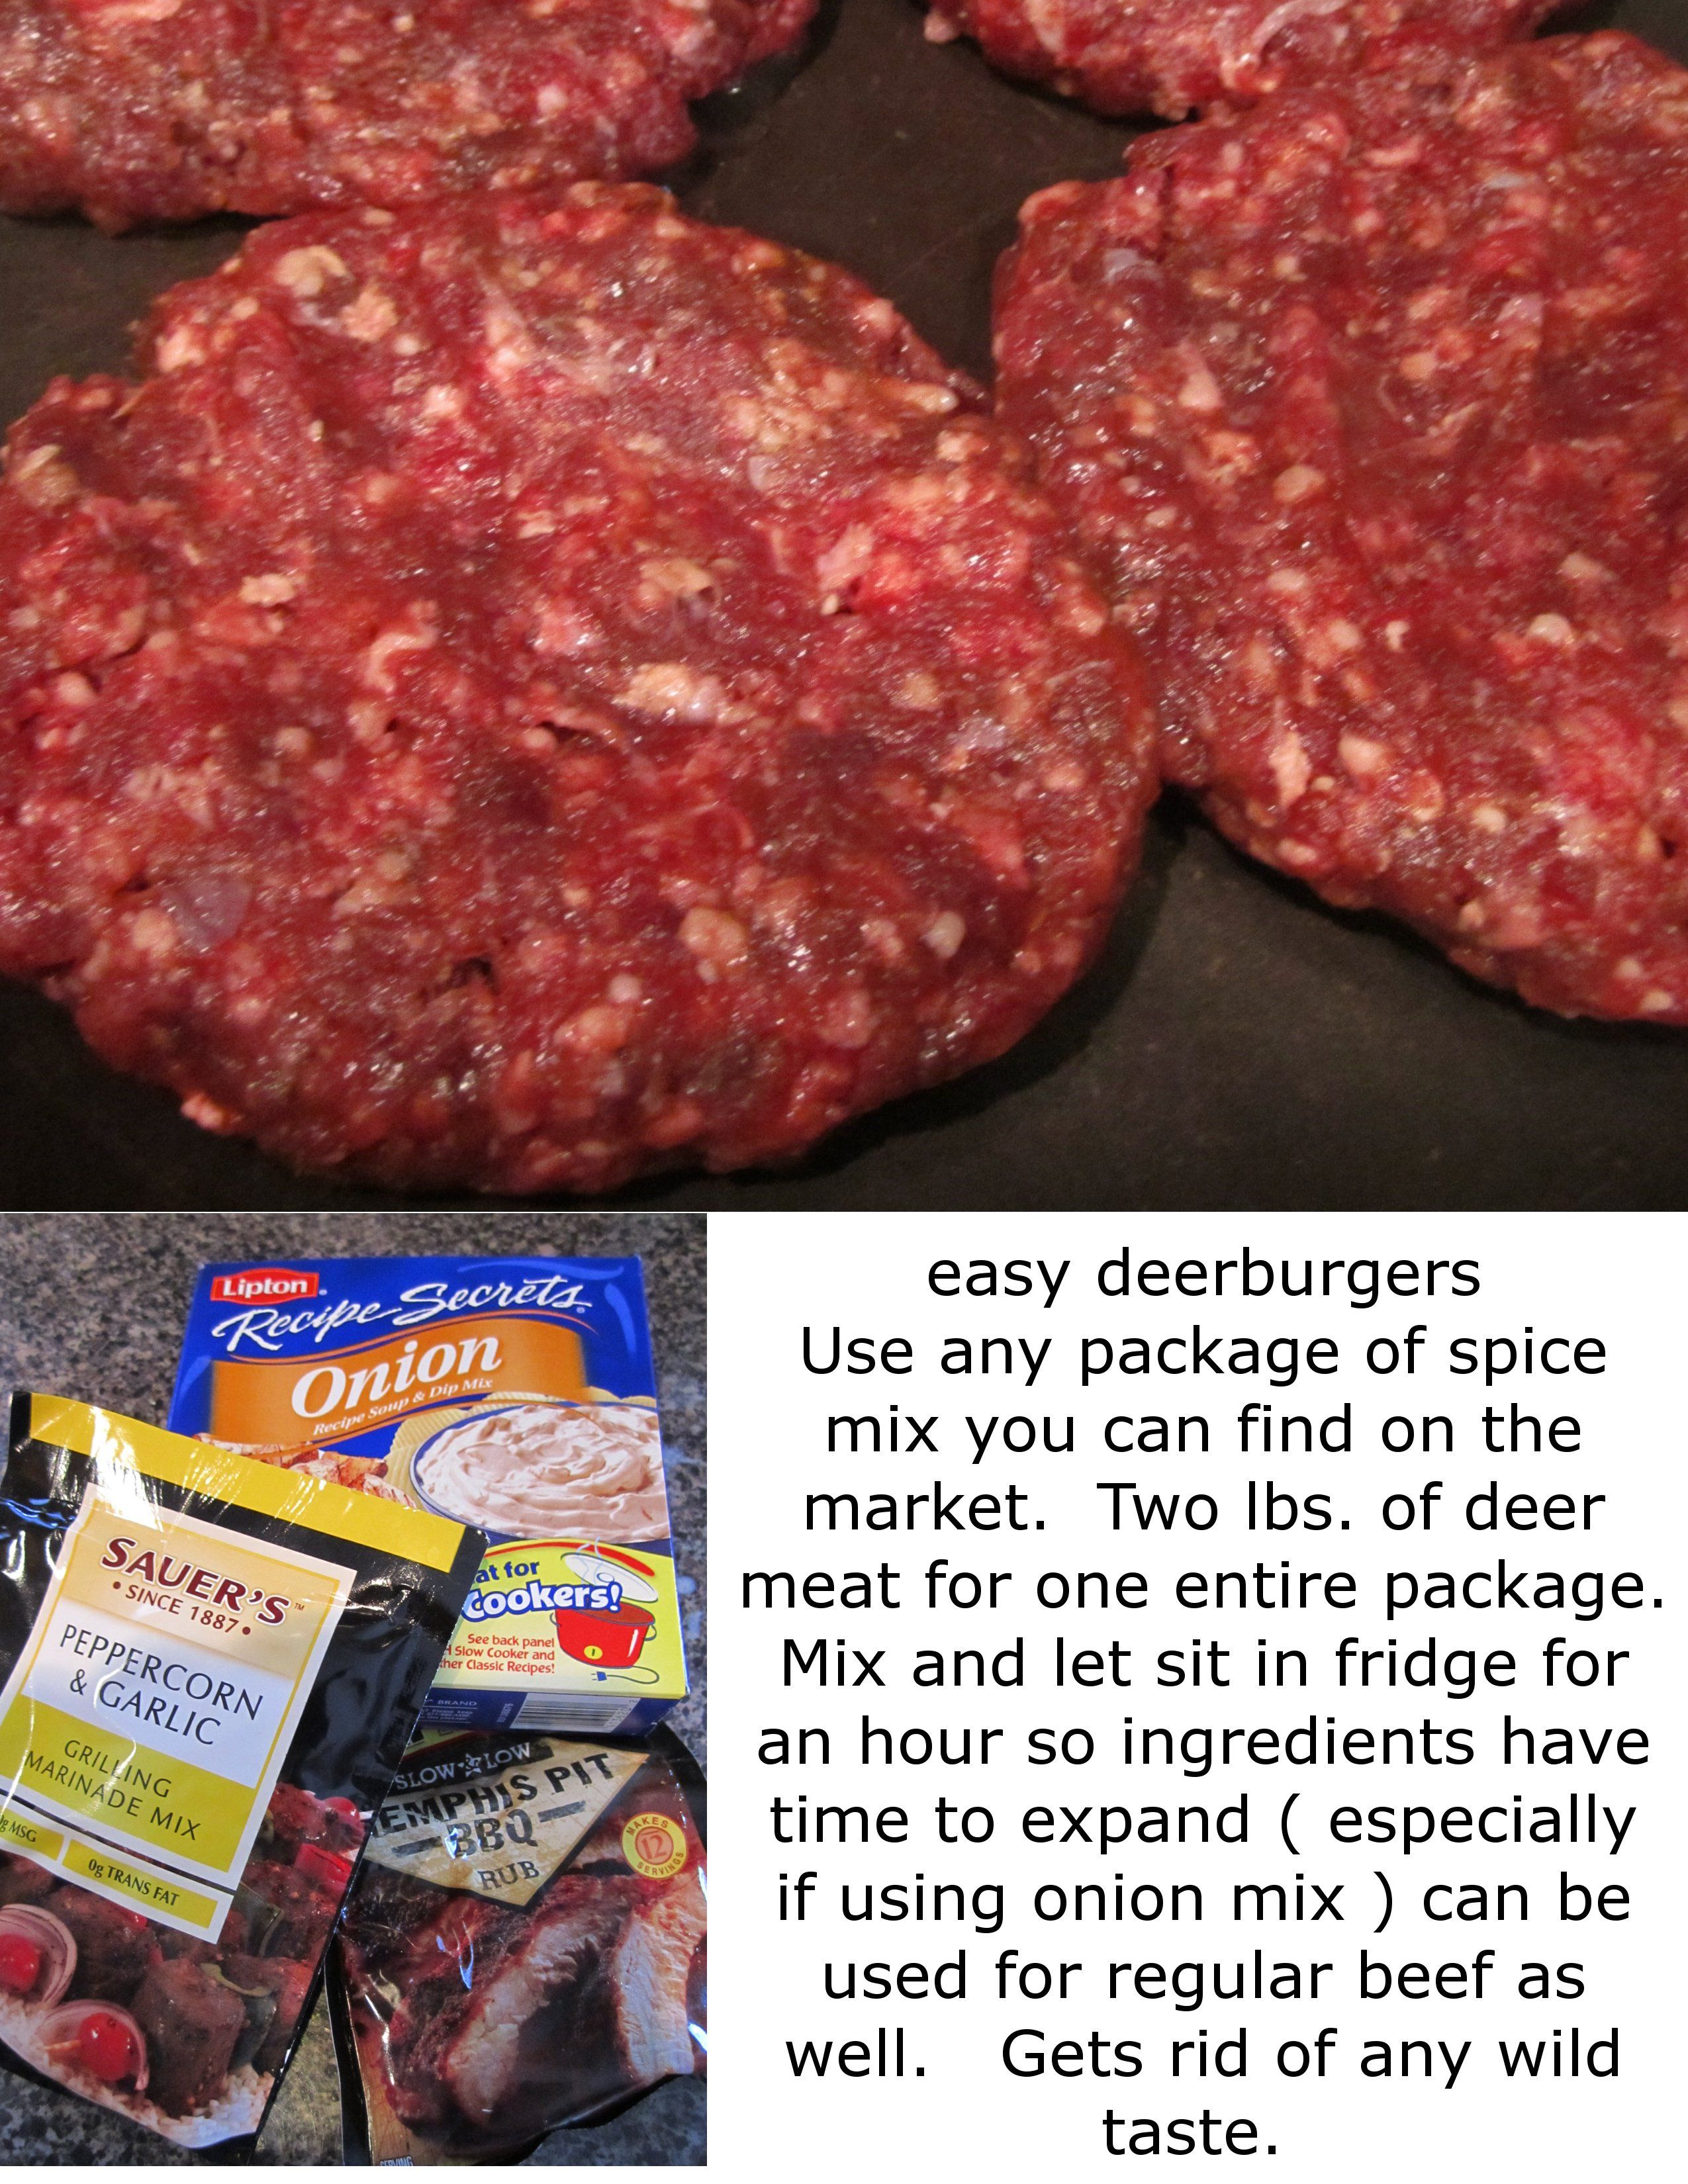 Pin By Candace Sipes On Deer Meat Recipes Deer Meat Recipes Venison Recipes Deer Recipes